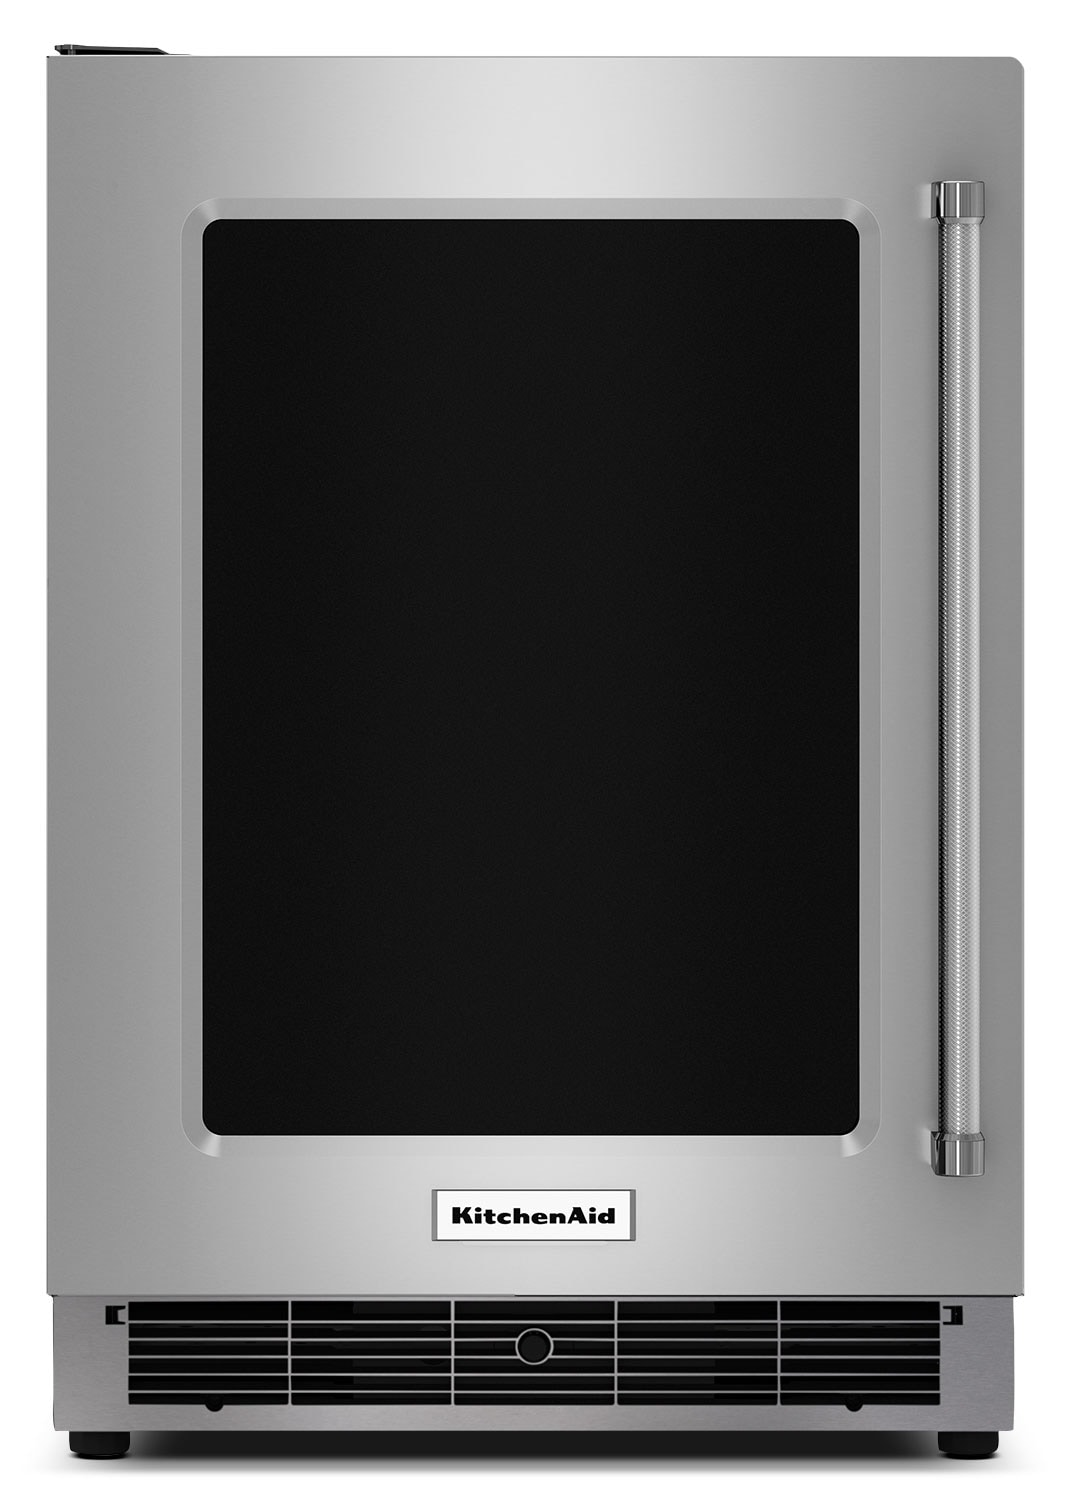 KitchenAid Stainless Steel Undercounter Refrigerator (5.1 Cu. Ft.) w/ Left Swing - KURL304ESS